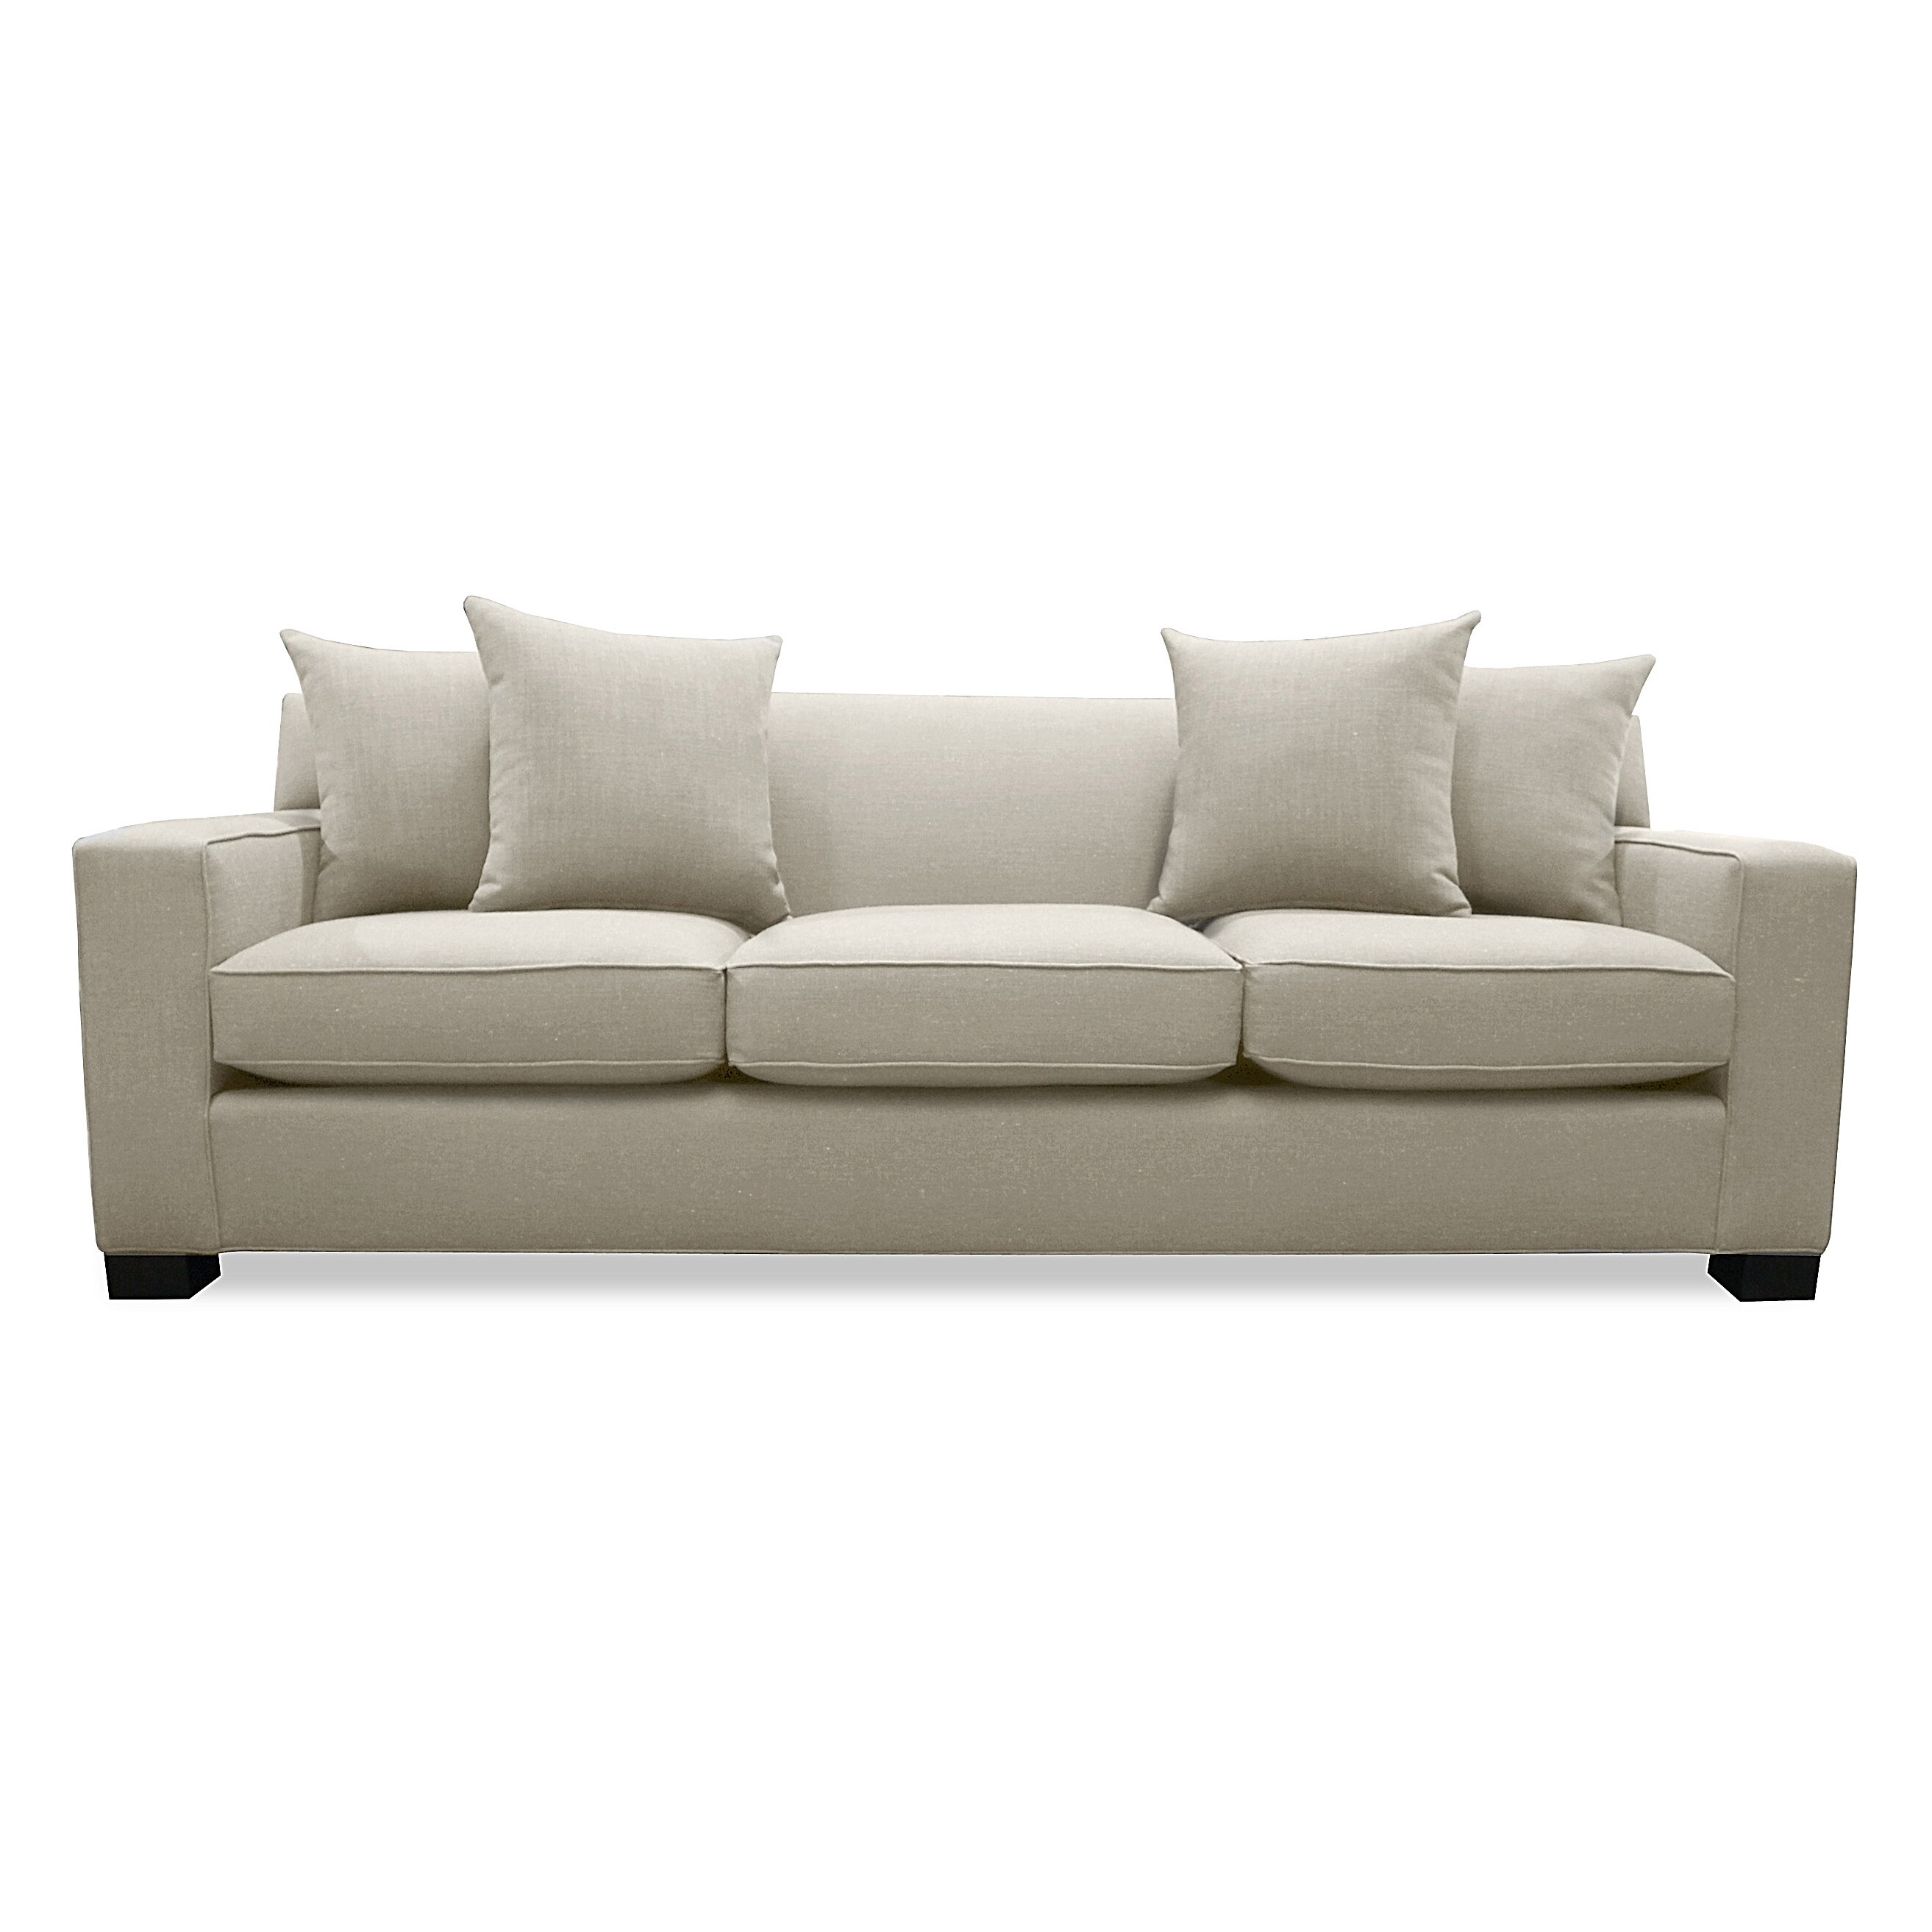 ... Row Rapid City Sd United States 8 Way Hand Tied Sofas You Ll Love  Wayfair · Broyhill Furniture Candra Traditional ...